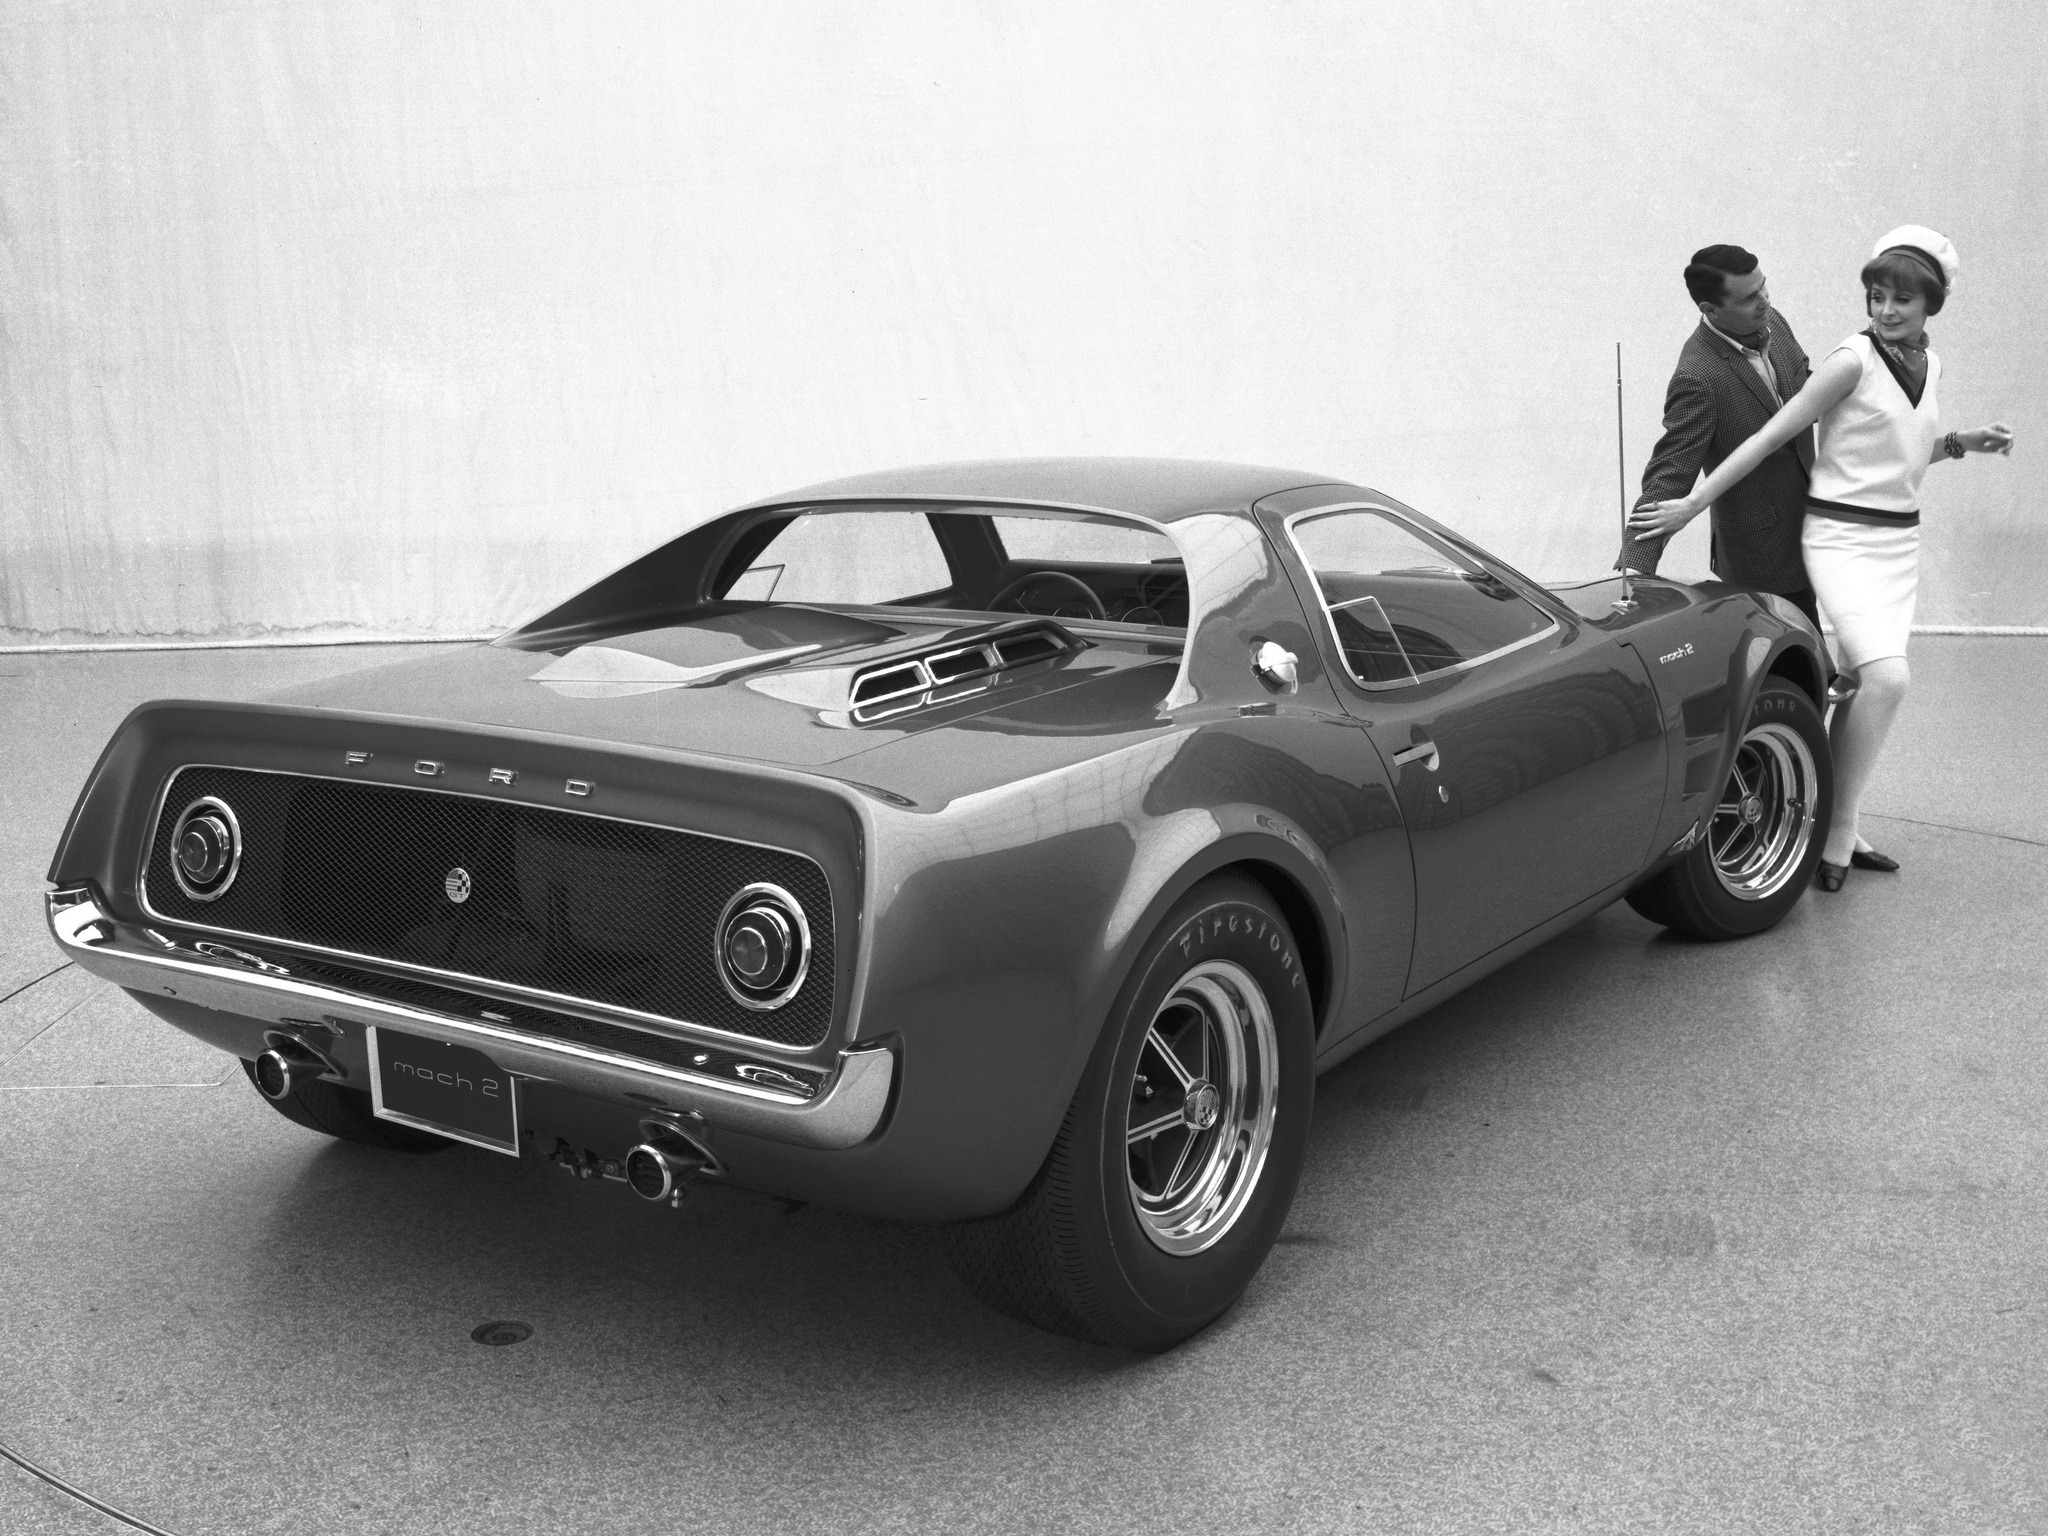 Mustangs Cars Mustang Mach 2 Concept Car